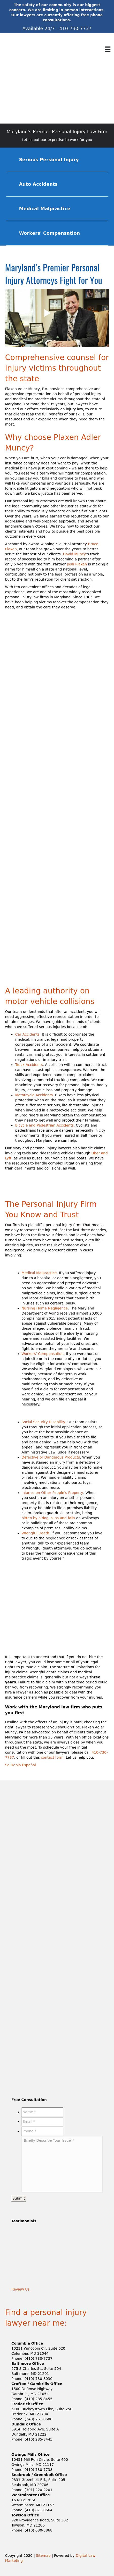 Plaxen & Adler PA - Westminster MD Lawyers